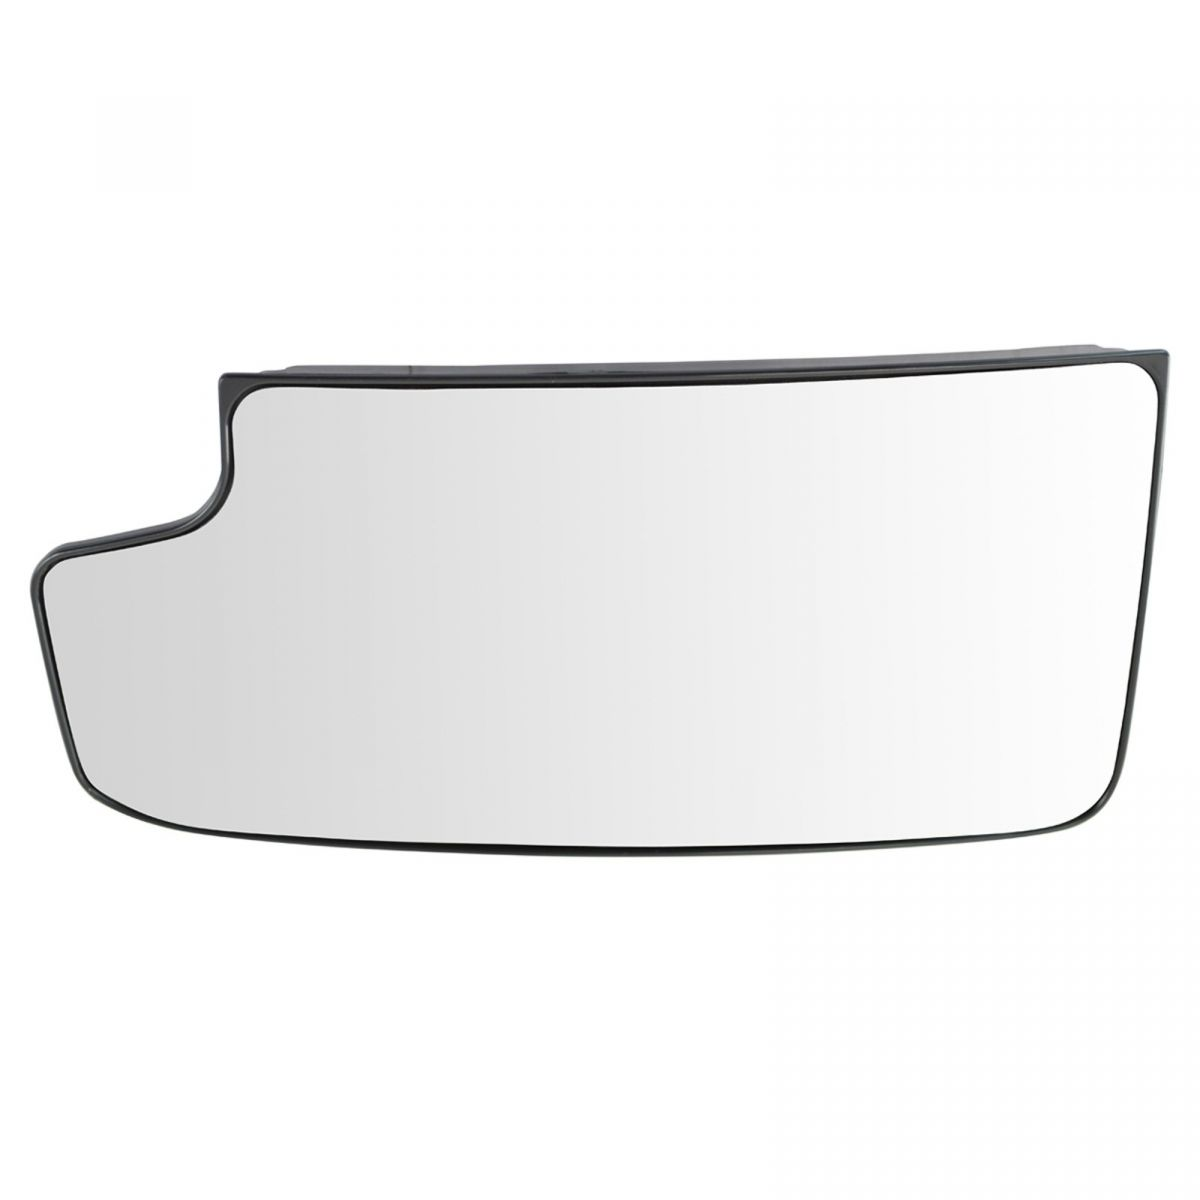 Tow Mirror Glass Lower Convex Driver Side Left LH for GM Pickup Truck SUV New